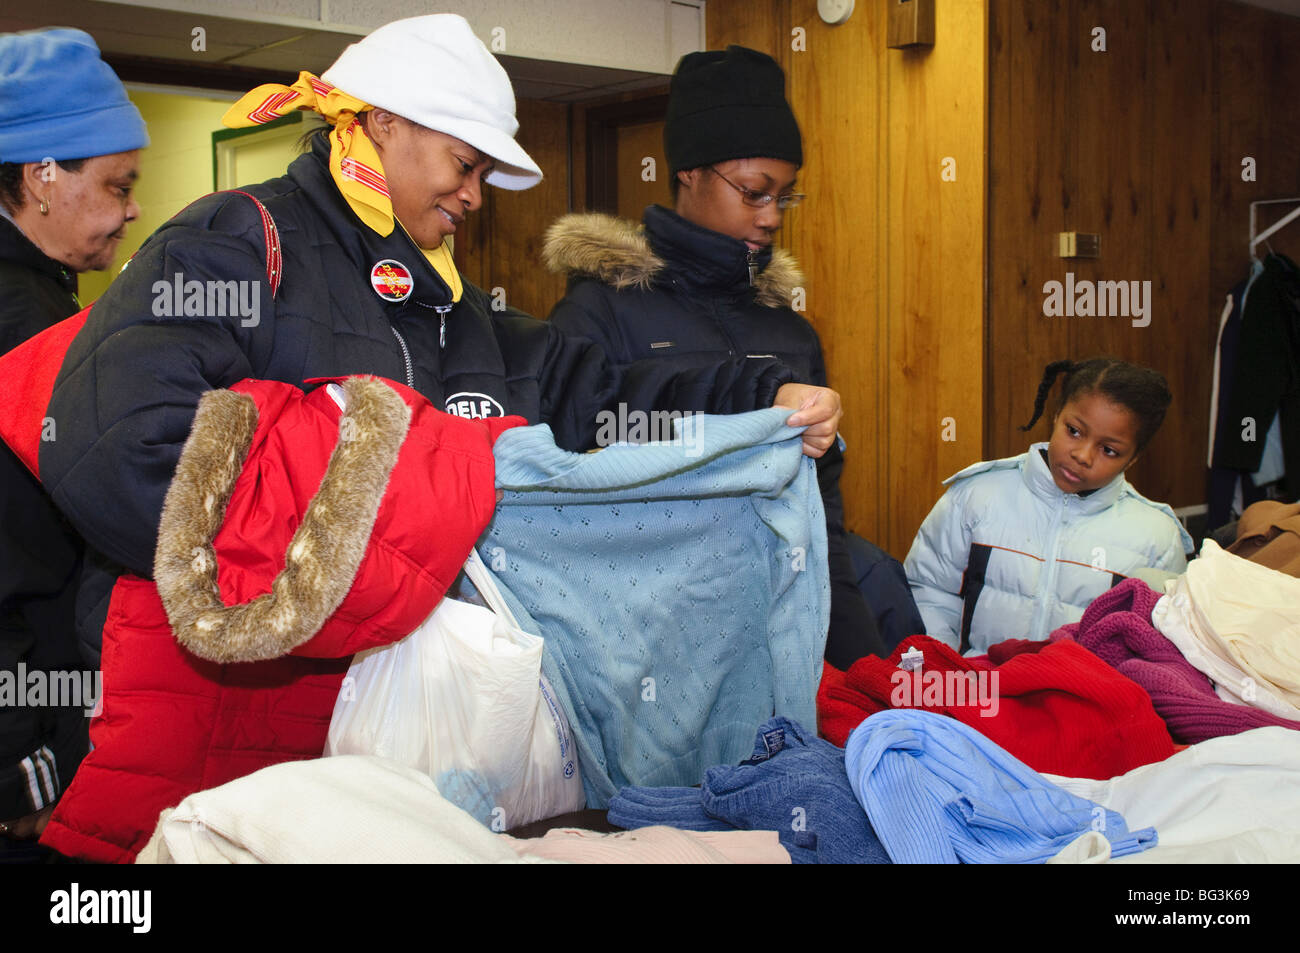 Community outreach clothing giveaway to help needy citizens. - Stock Image